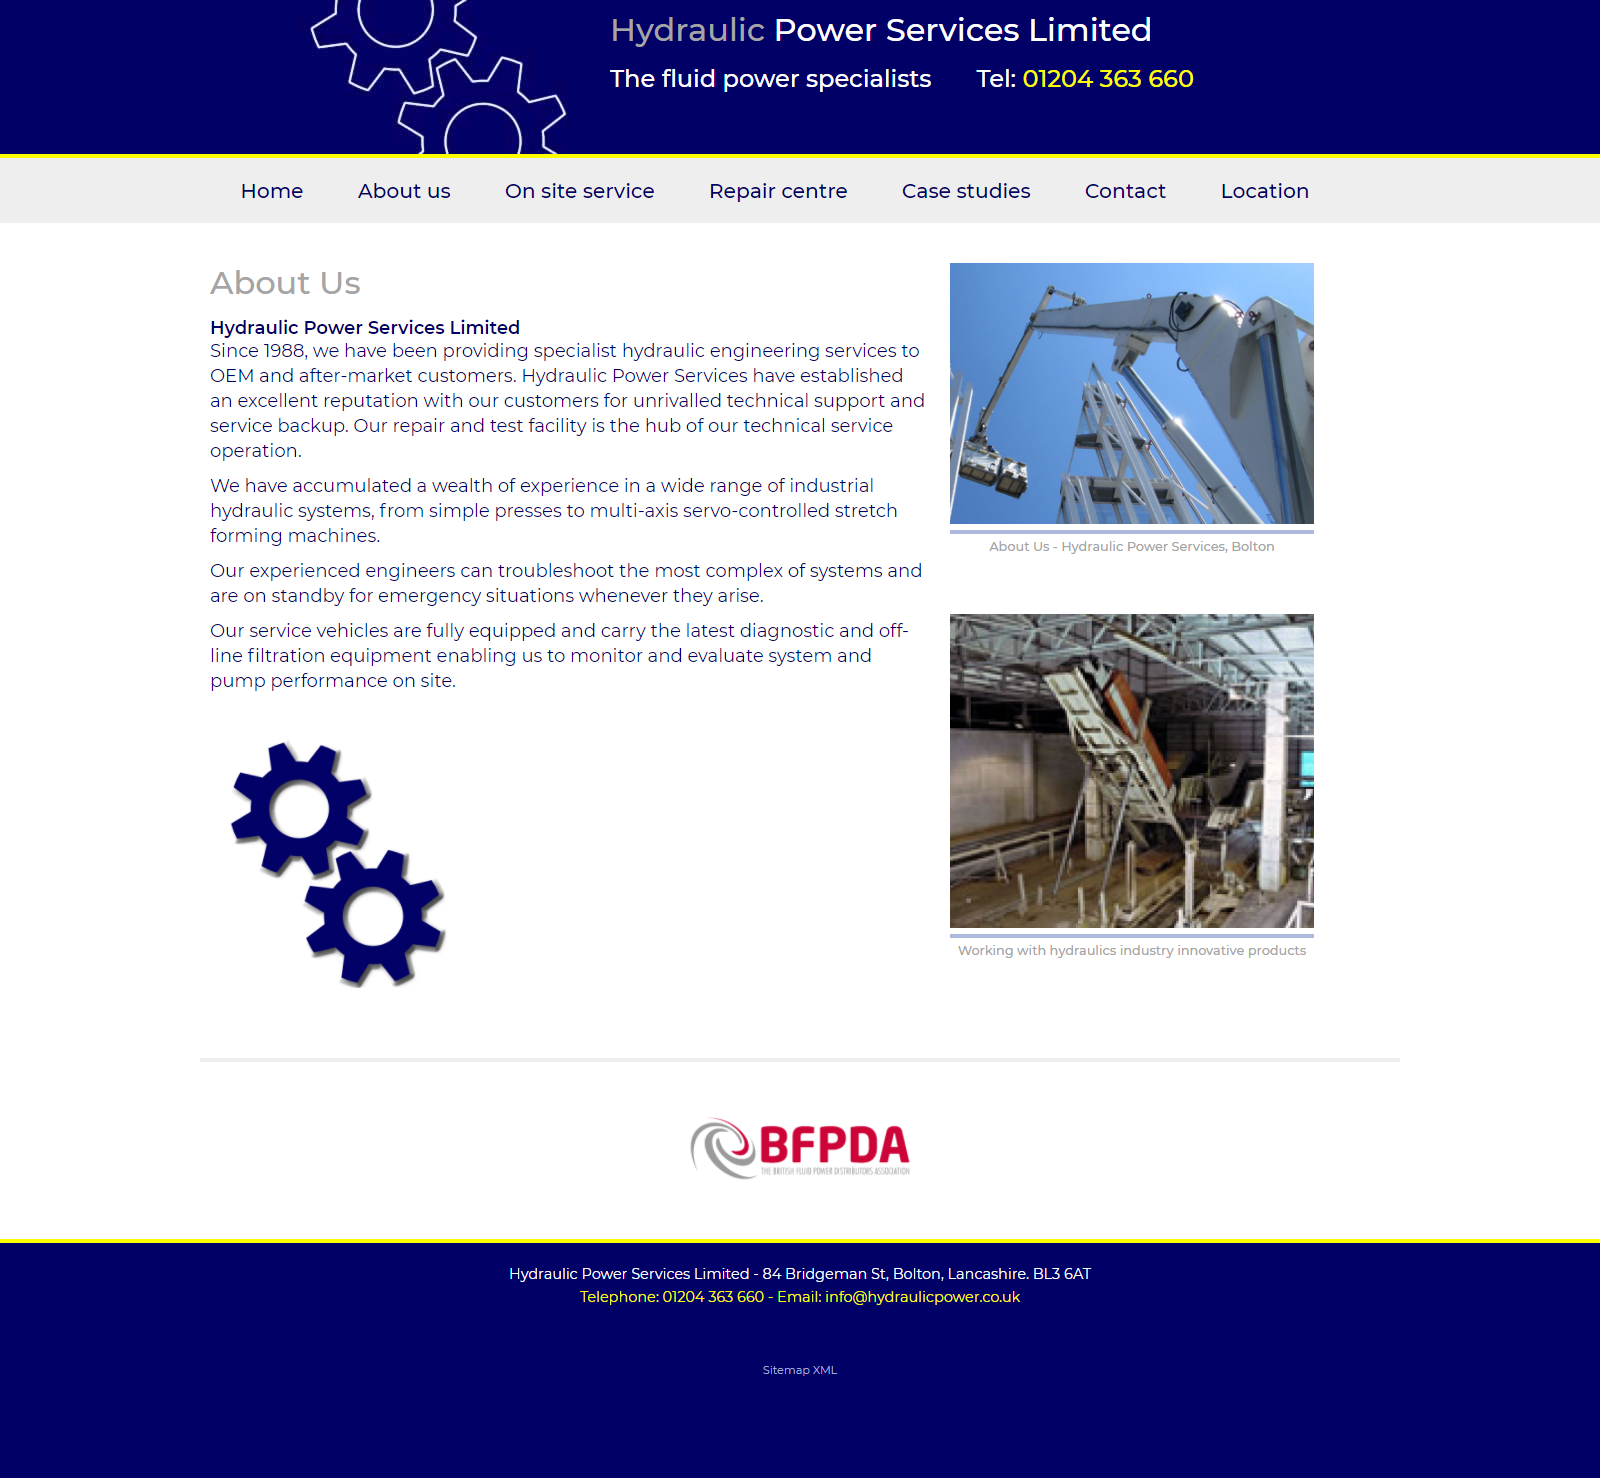 Hydraulic Power Services - About Page